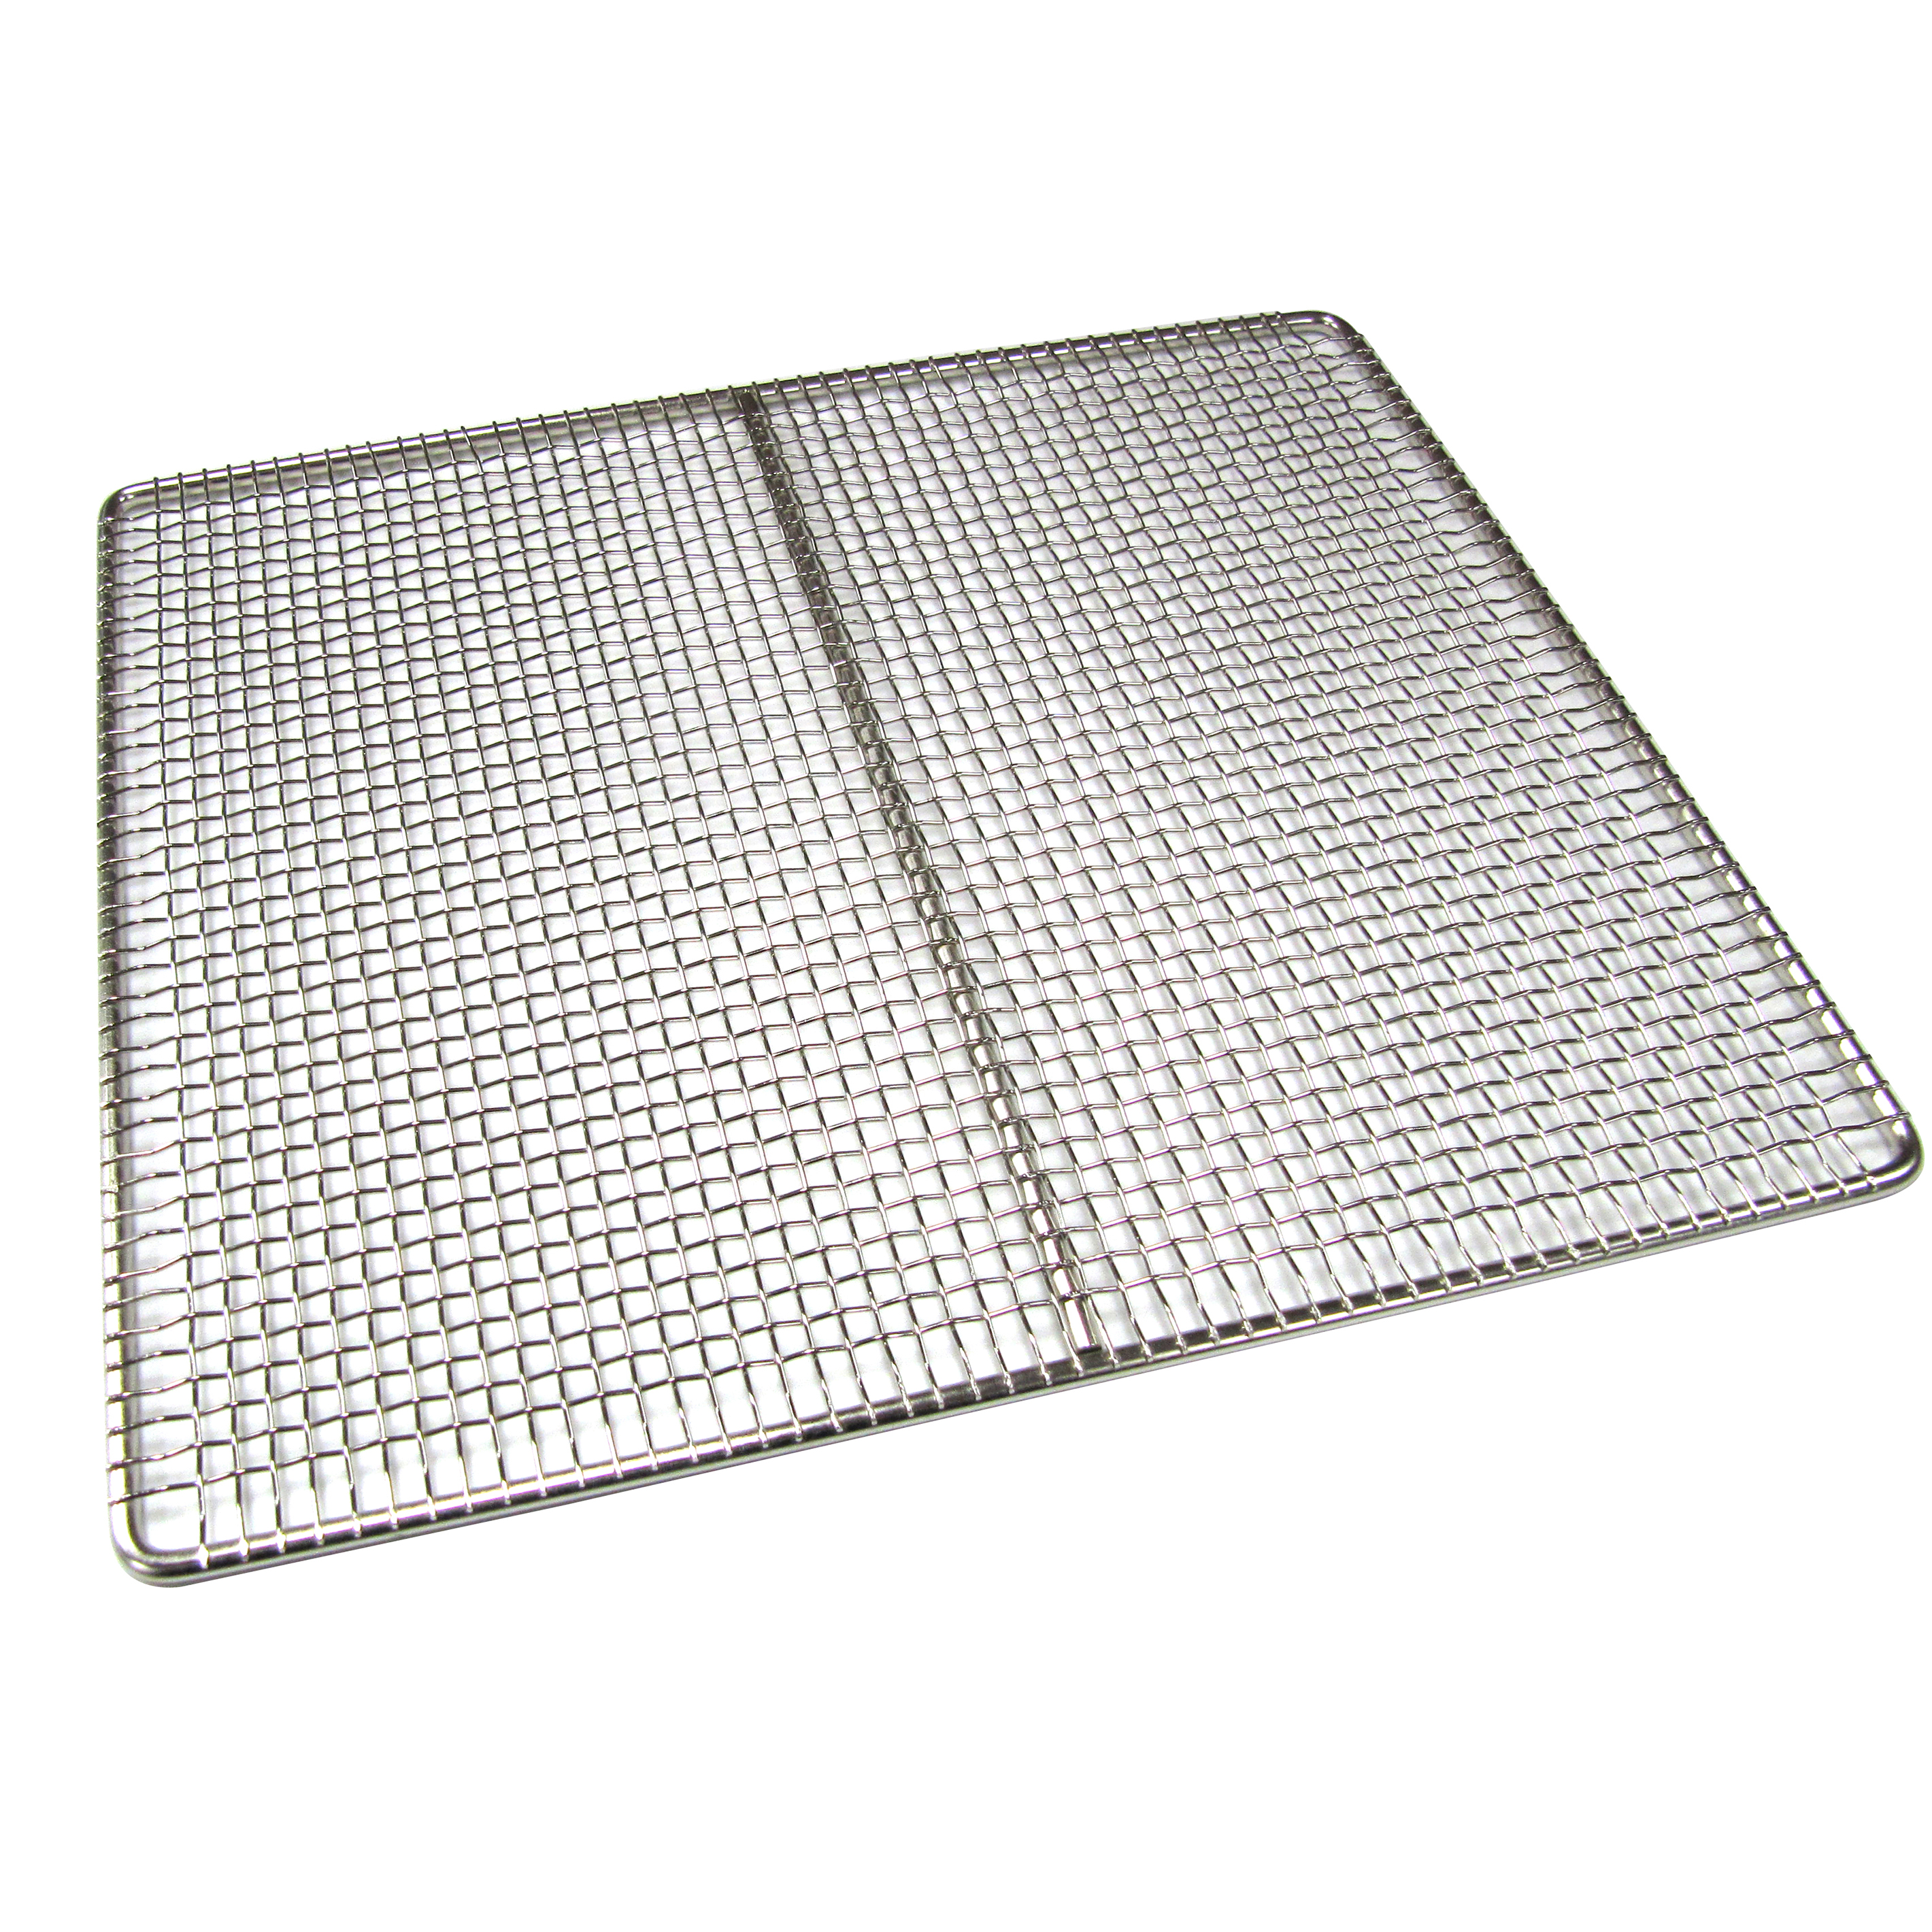 4950-90 Admiral Craft GR-14H wire pan rack / grate